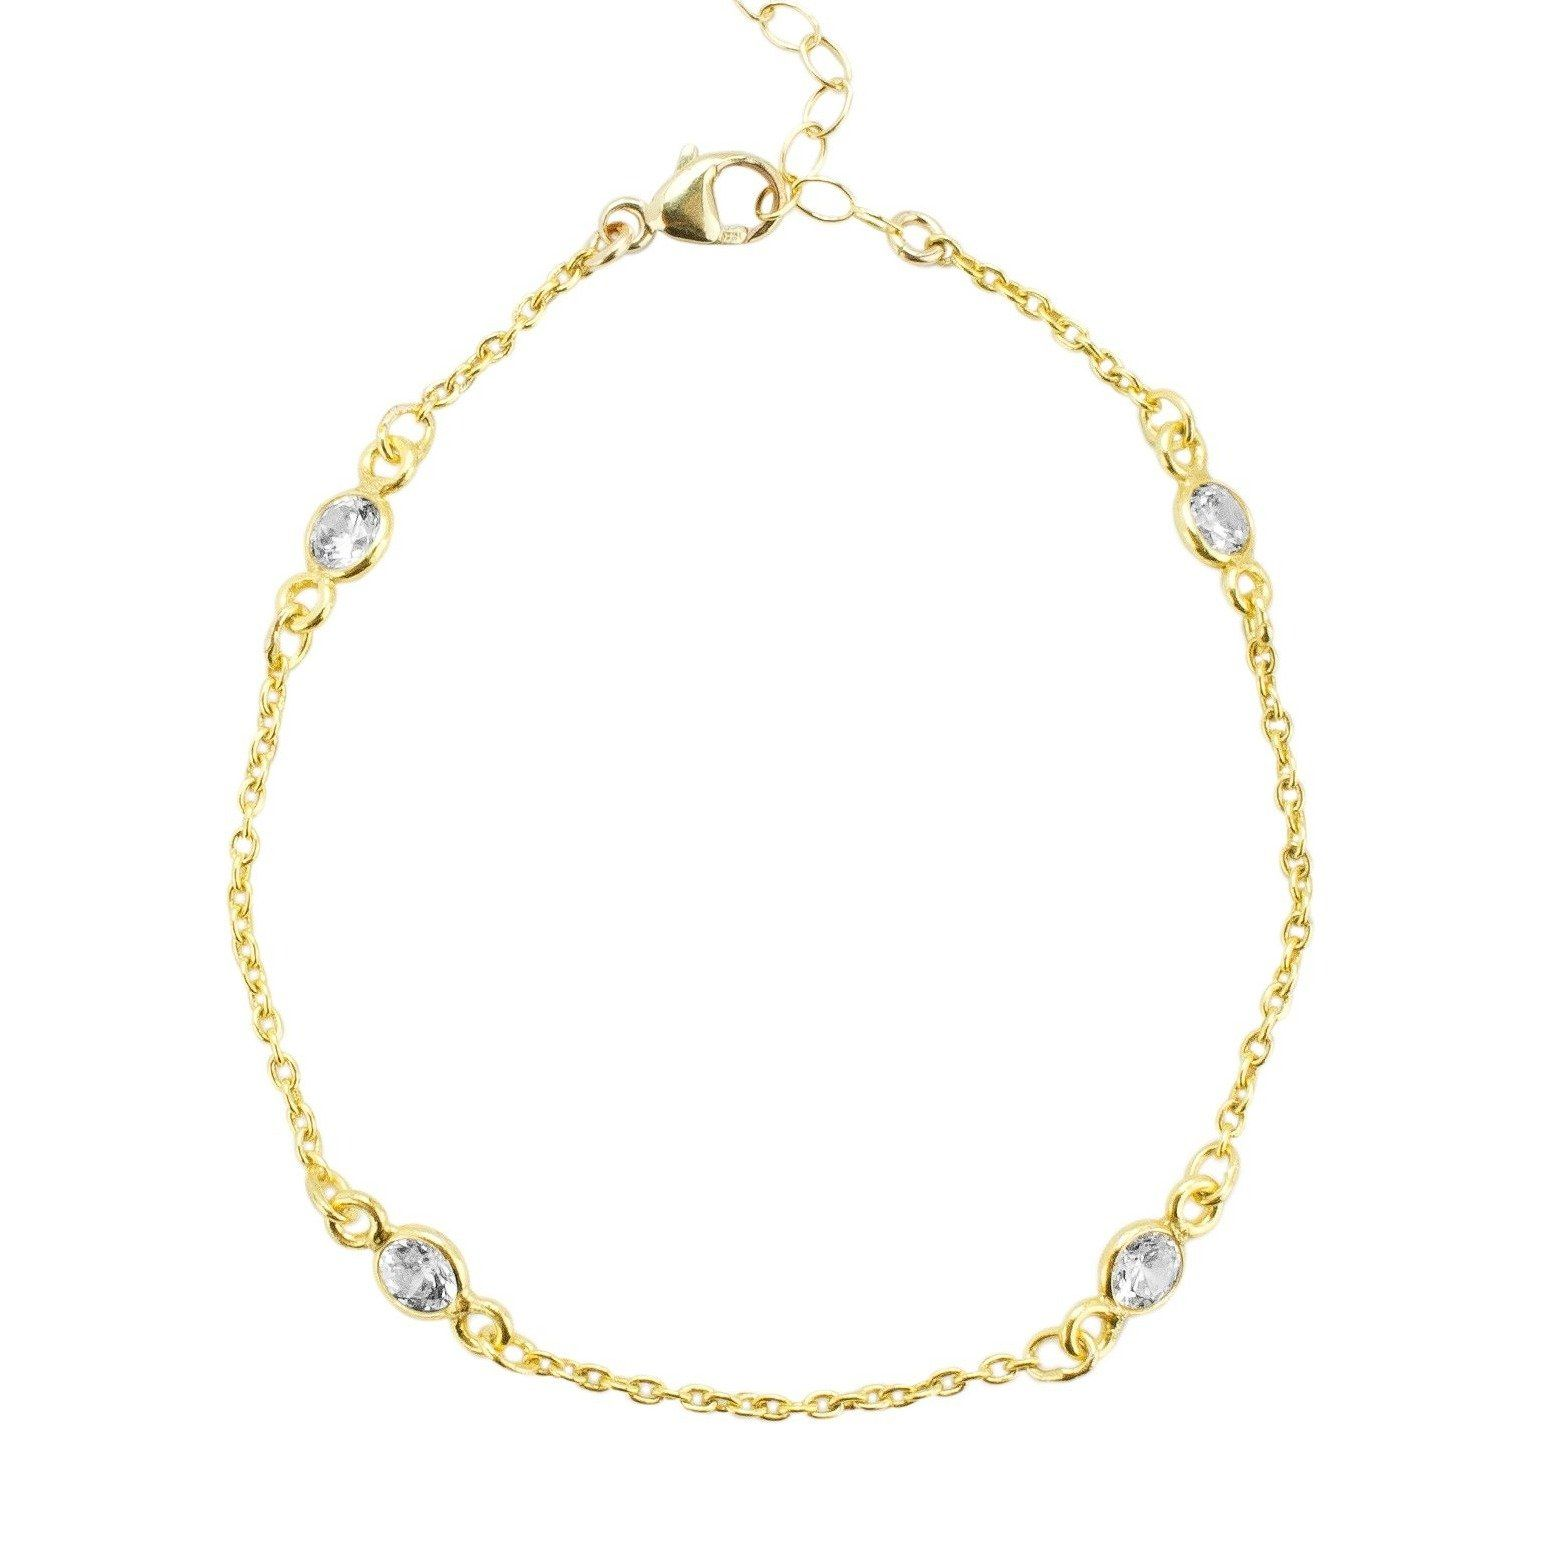 Crystal Chain Bracelet by Katie Dean Jewelry shown against a white background.